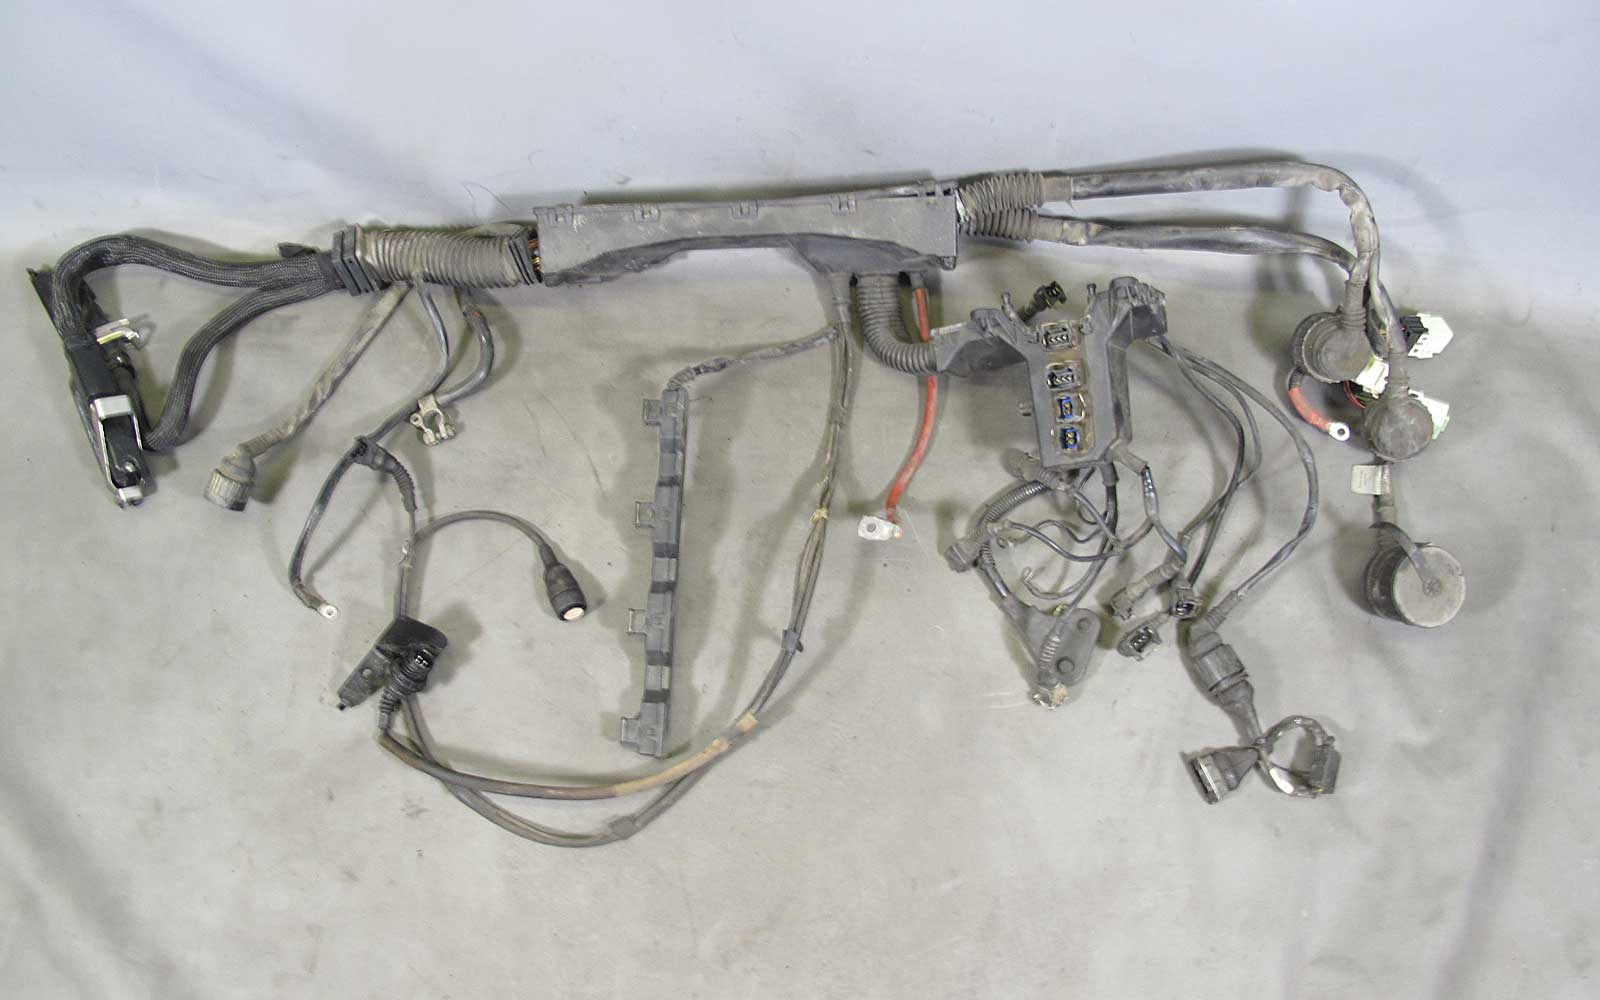 1995 bmw e36 318i m42 4 cylinder engine wiring harness complete for auto trans ebay. Black Bedroom Furniture Sets. Home Design Ideas